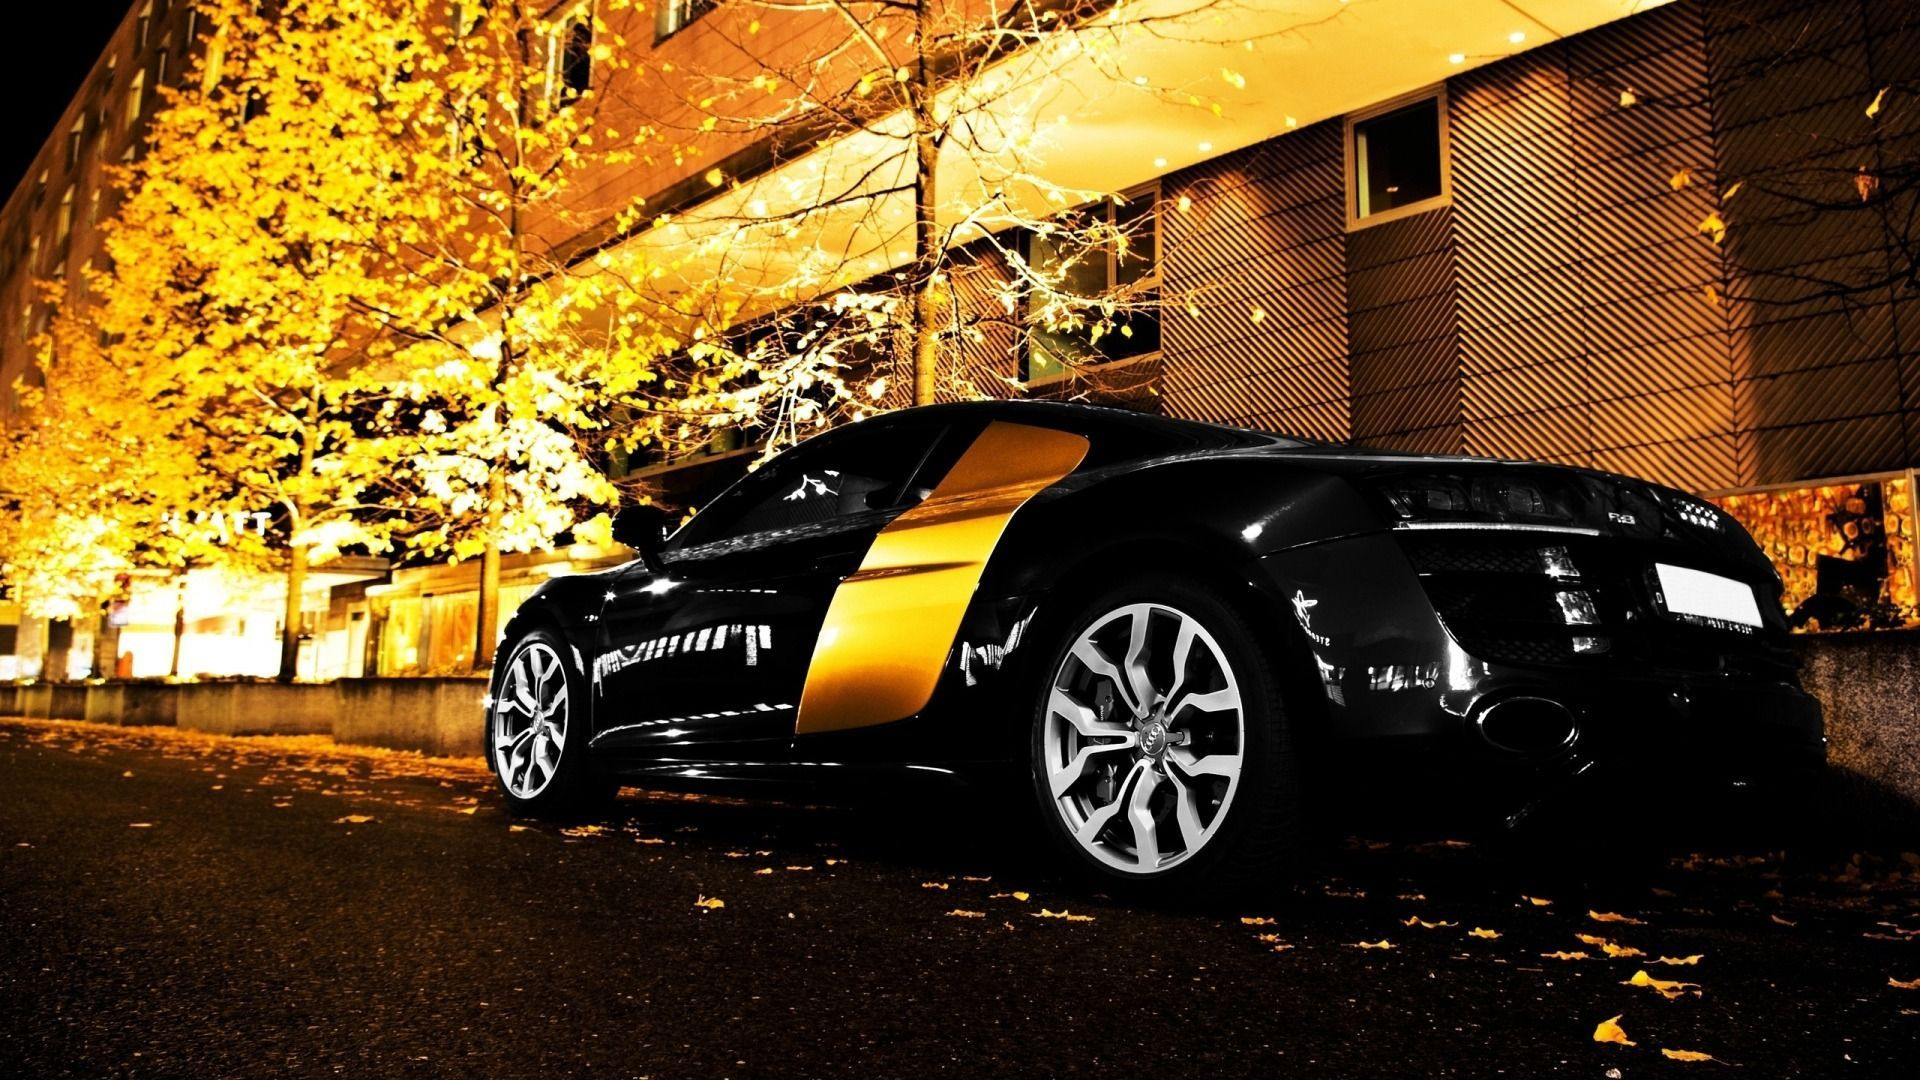 Cool Car Wallpapers For Android